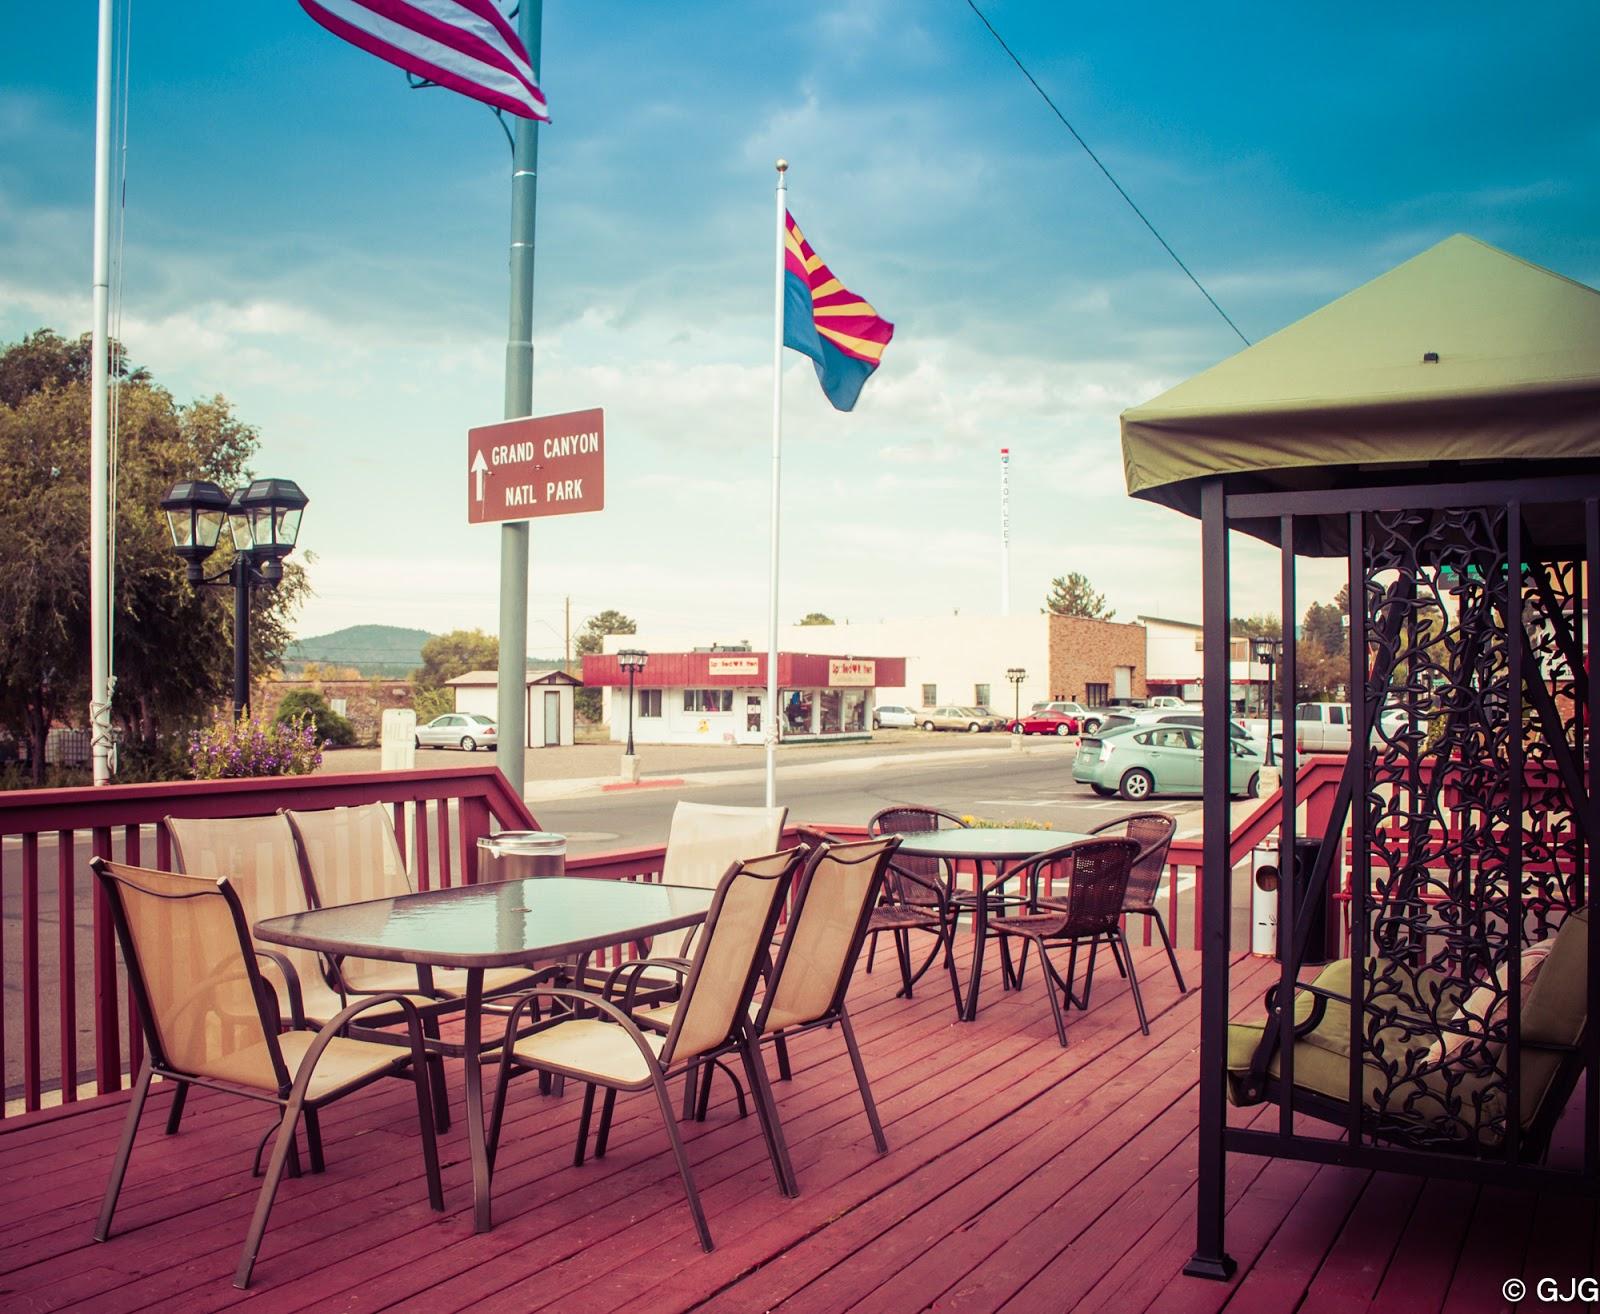 Travelodge Williams Grand Canyon: Where to Stay in Williams, Arizona